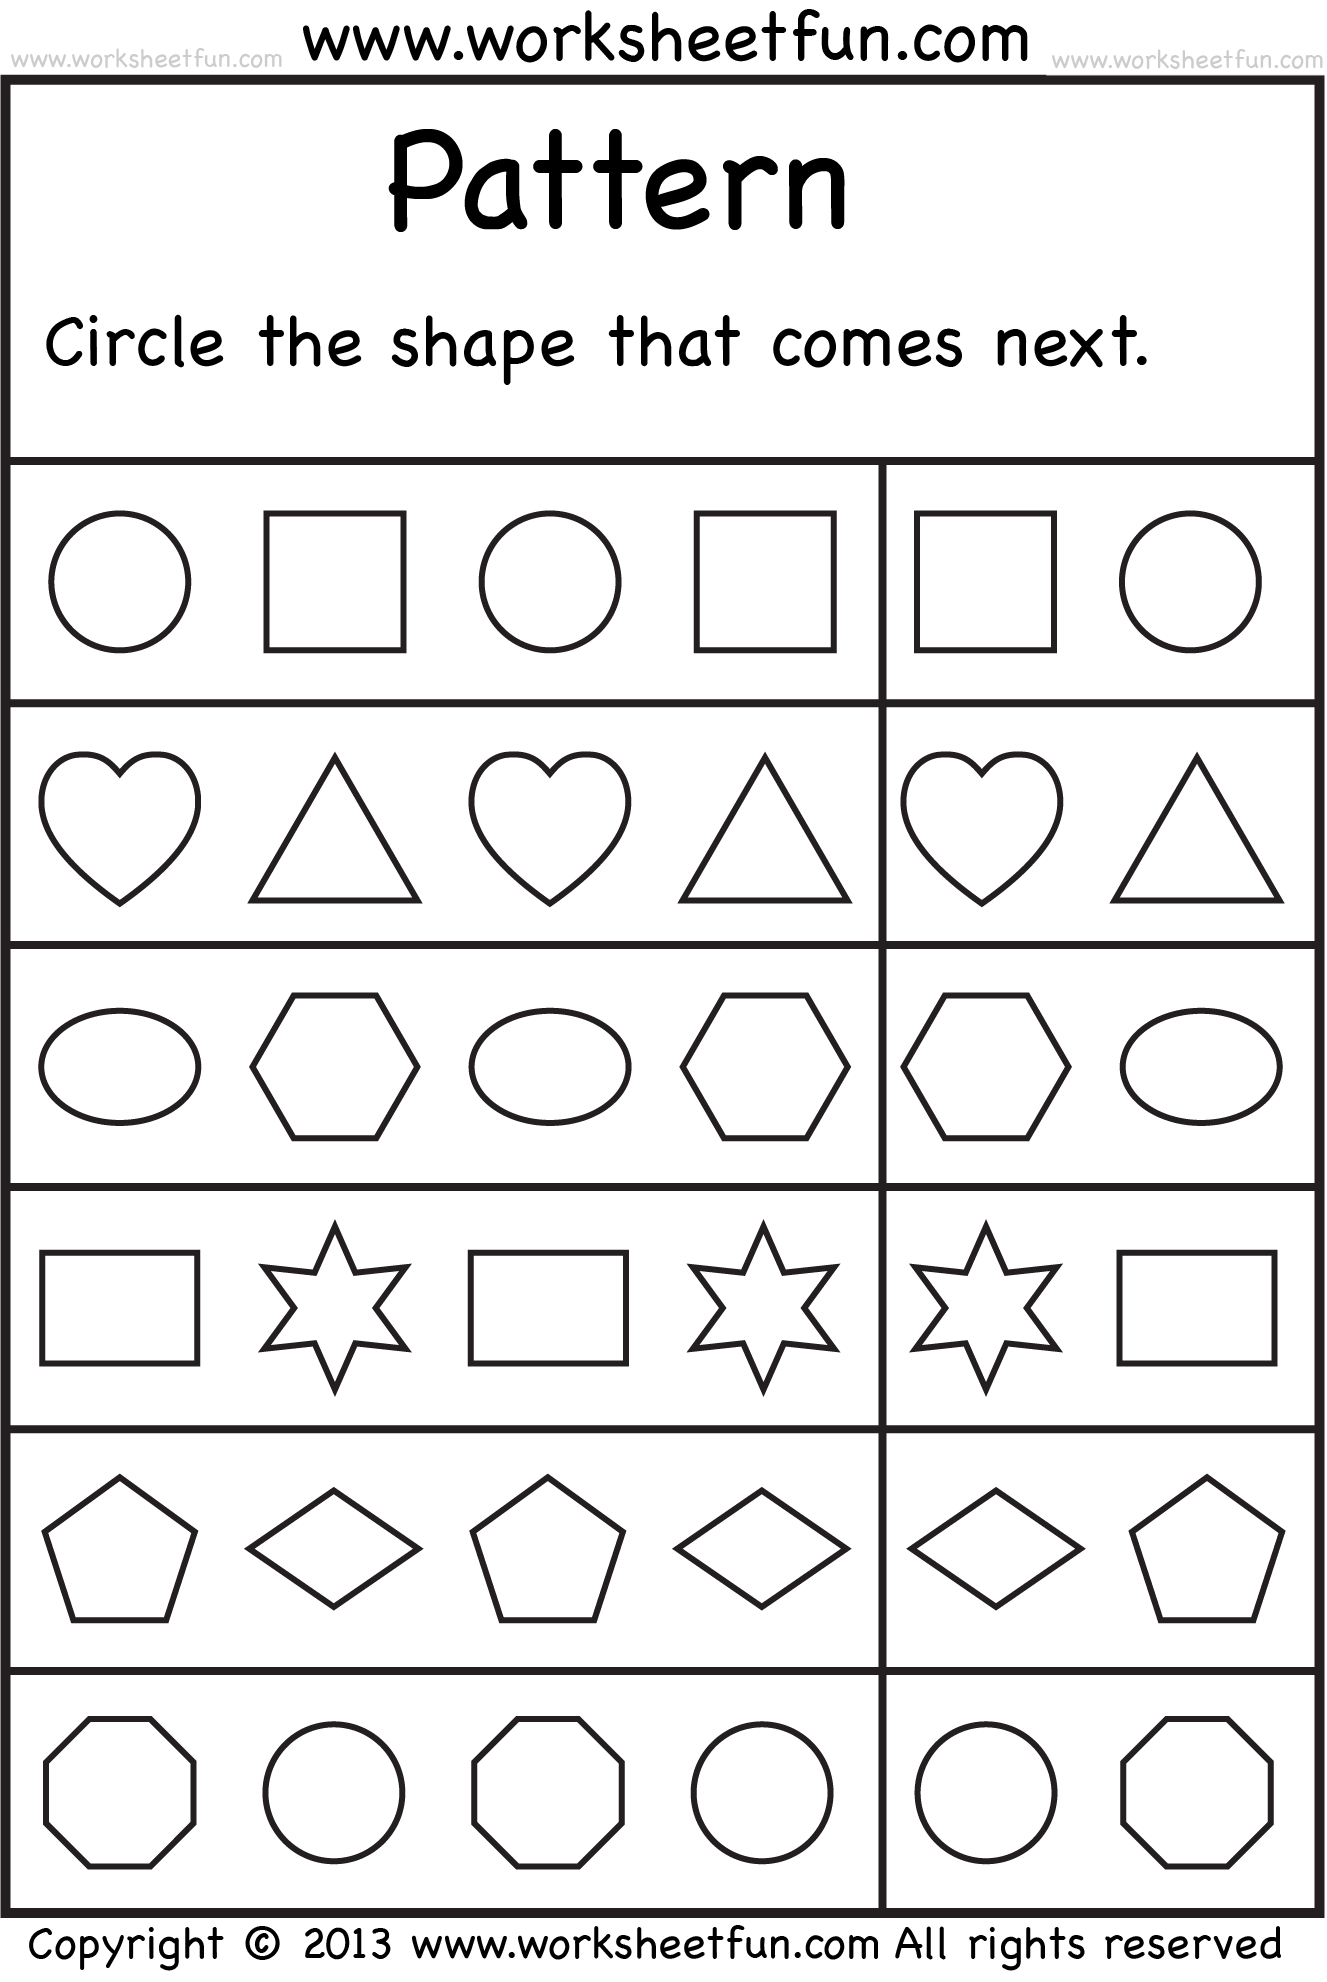 Weirdmailus  Wonderful  Images About School Worksheets On Pinterest  Number Words  With Handsome  Images About School Worksheets On Pinterest  Number Words Alphabet Worksheets And Free Printable Kindergarten Worksheets With Awesome English Worksheets Ks Also Simple Maths Worksheets In Addition Ten Times Table Worksheet And Double Dominoes Worksheet As Well As Simple Place Value Worksheets Additionally Science Solar System Worksheets From Pinterestcom With Weirdmailus  Handsome  Images About School Worksheets On Pinterest  Number Words  With Awesome  Images About School Worksheets On Pinterest  Number Words Alphabet Worksheets And Free Printable Kindergarten Worksheets And Wonderful English Worksheets Ks Also Simple Maths Worksheets In Addition Ten Times Table Worksheet From Pinterestcom